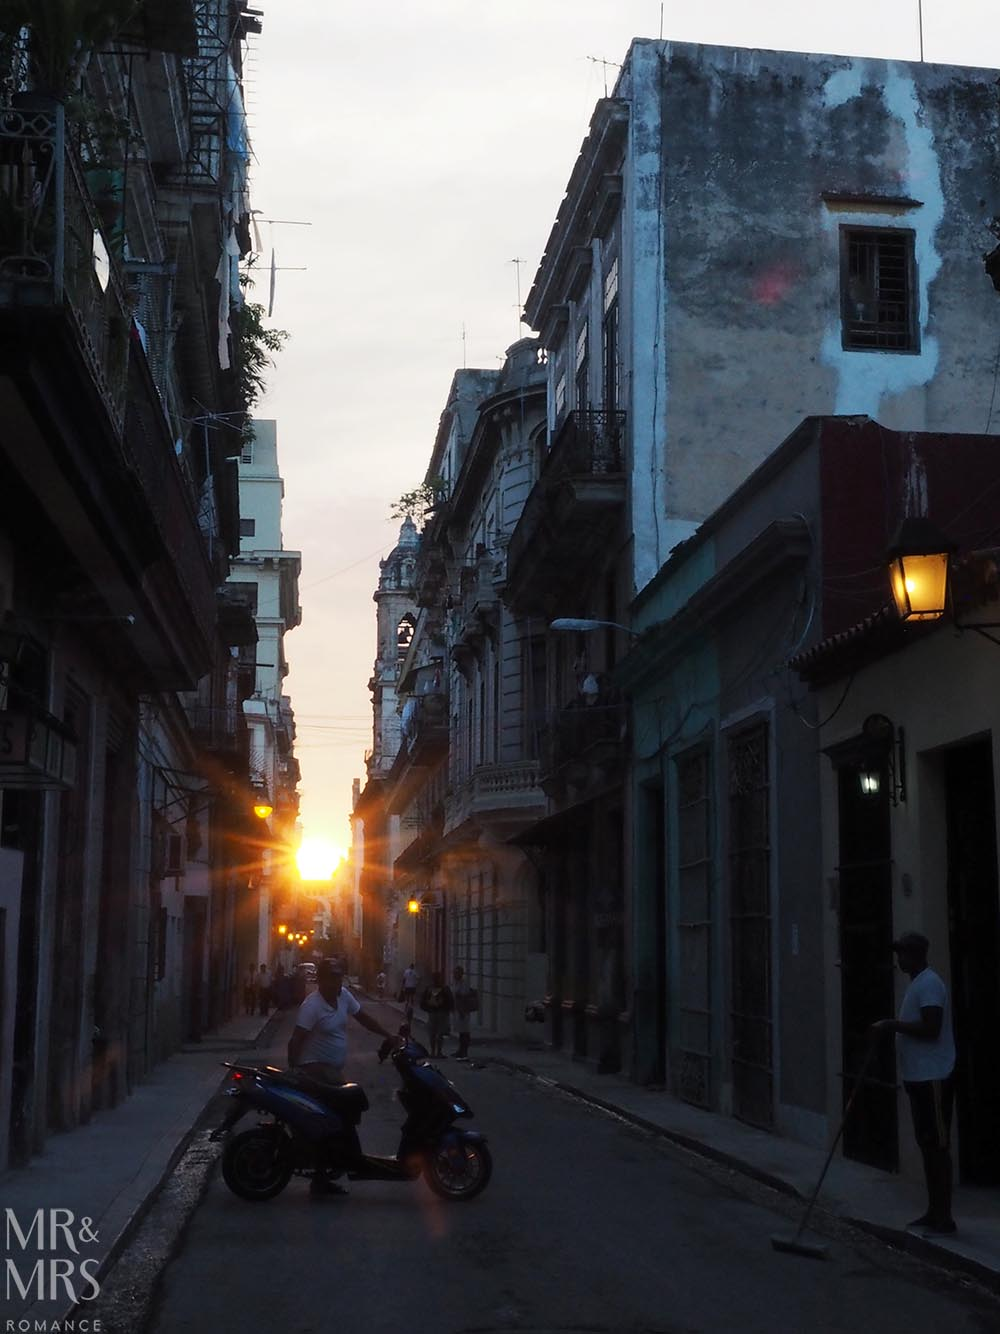 Havana Cuba - how much has Cuba changed? Sunrise